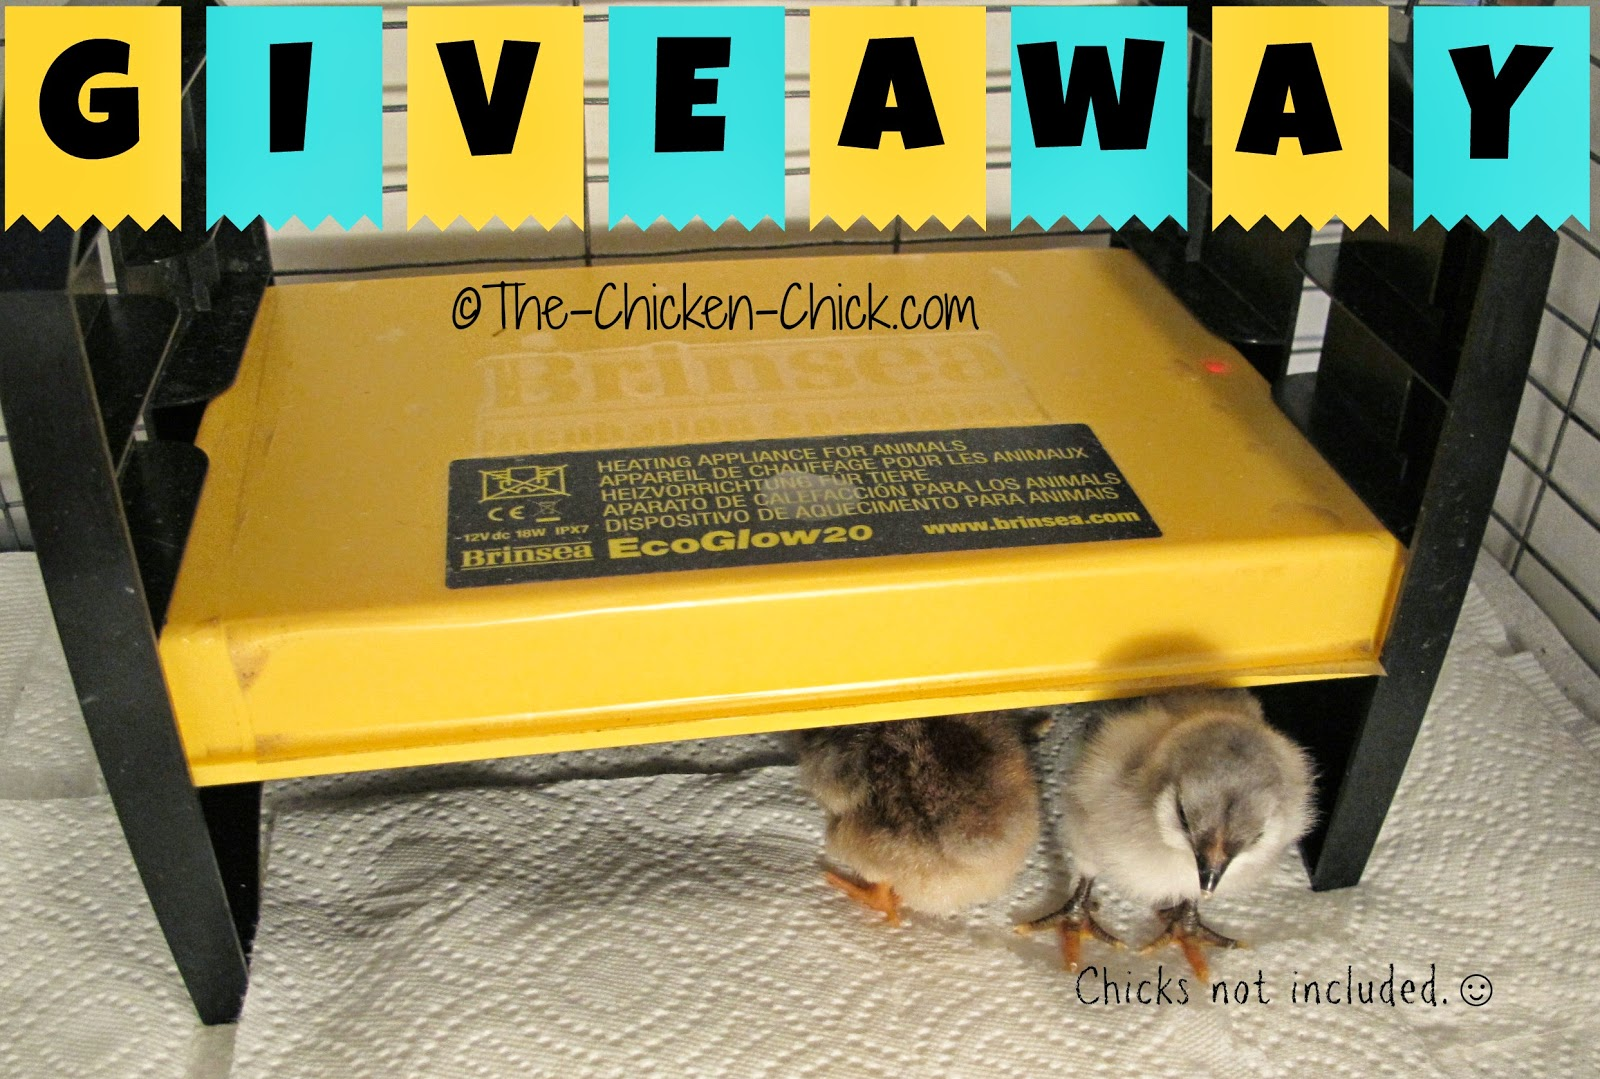 Brinsea EcoGlow Brooder Giveaway at The-Chicken-Chick.com